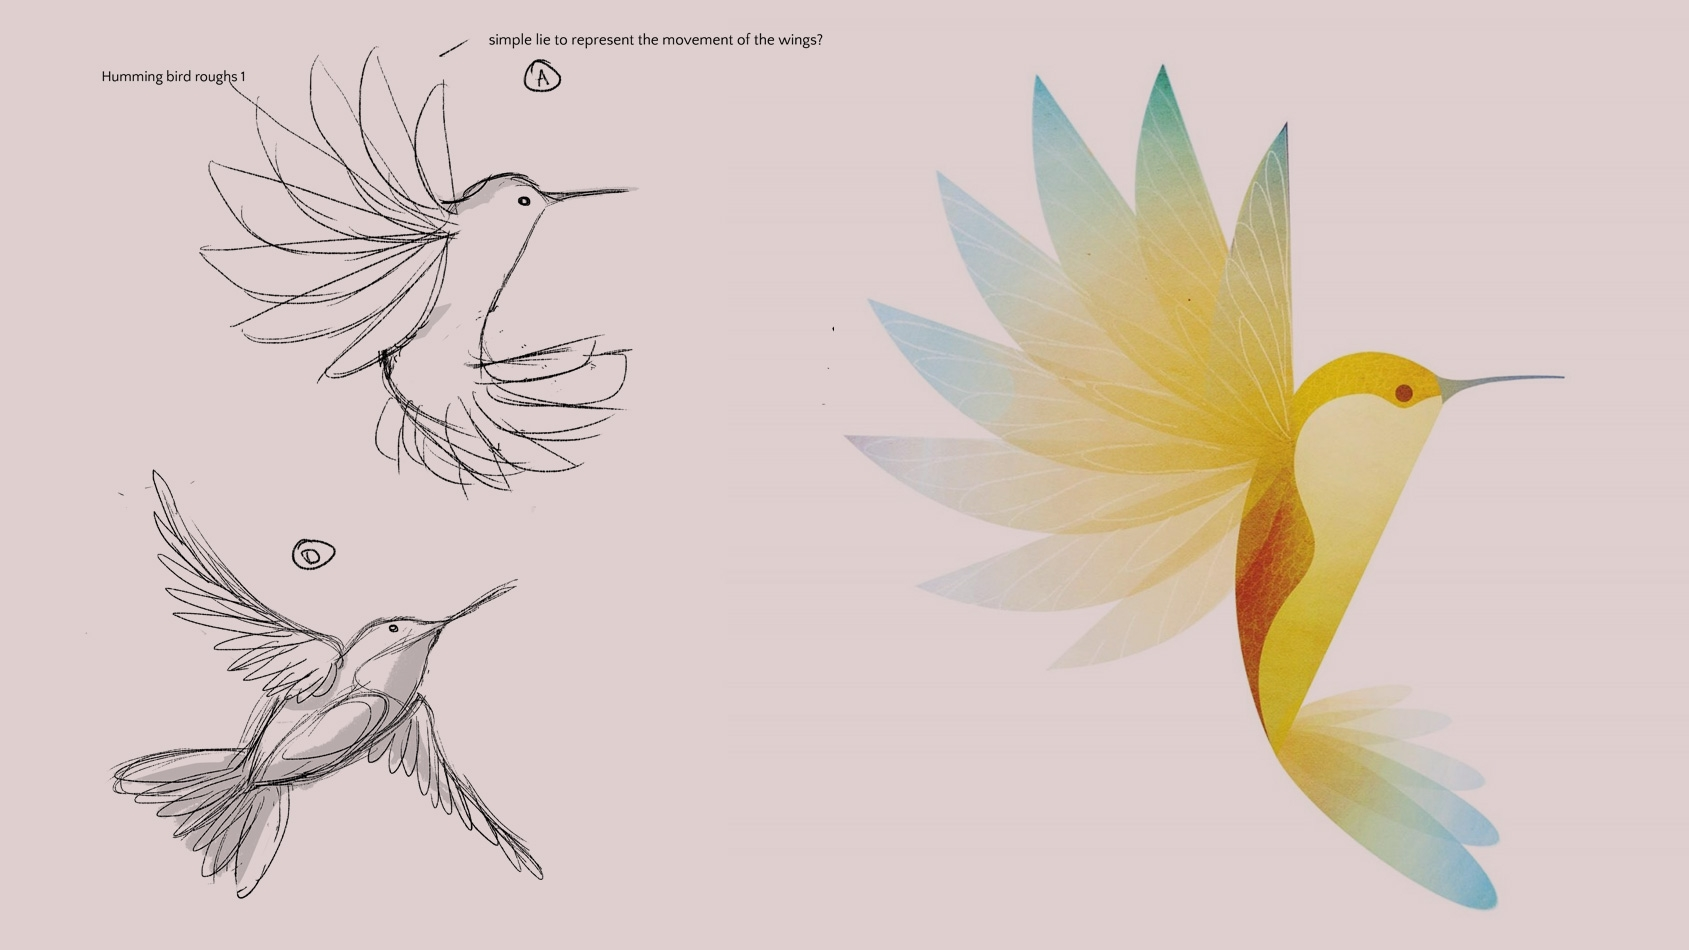 How To Draw Birds: 18 Tips For Both Hand-drawn And Vector